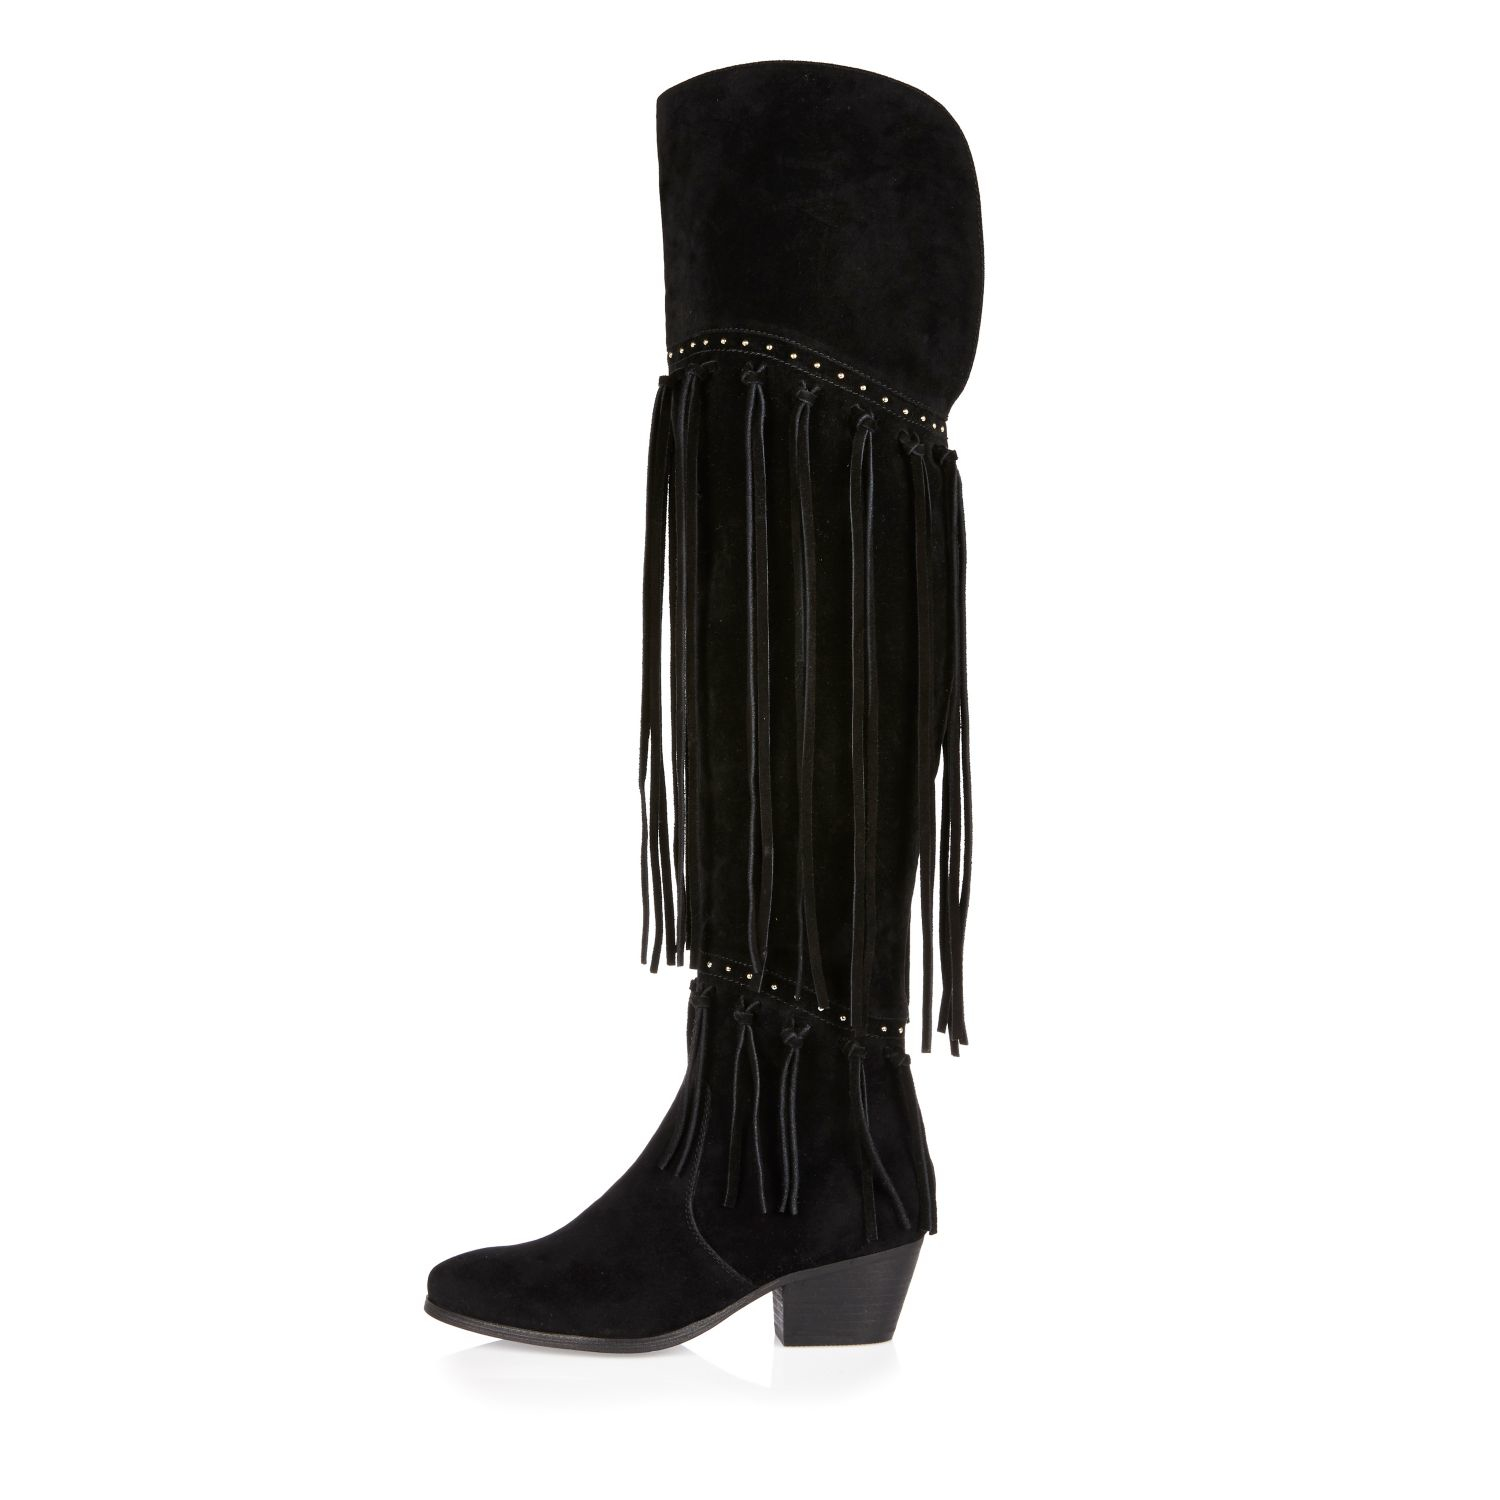 Over The Knee Fringe Boots lWCiIPW7